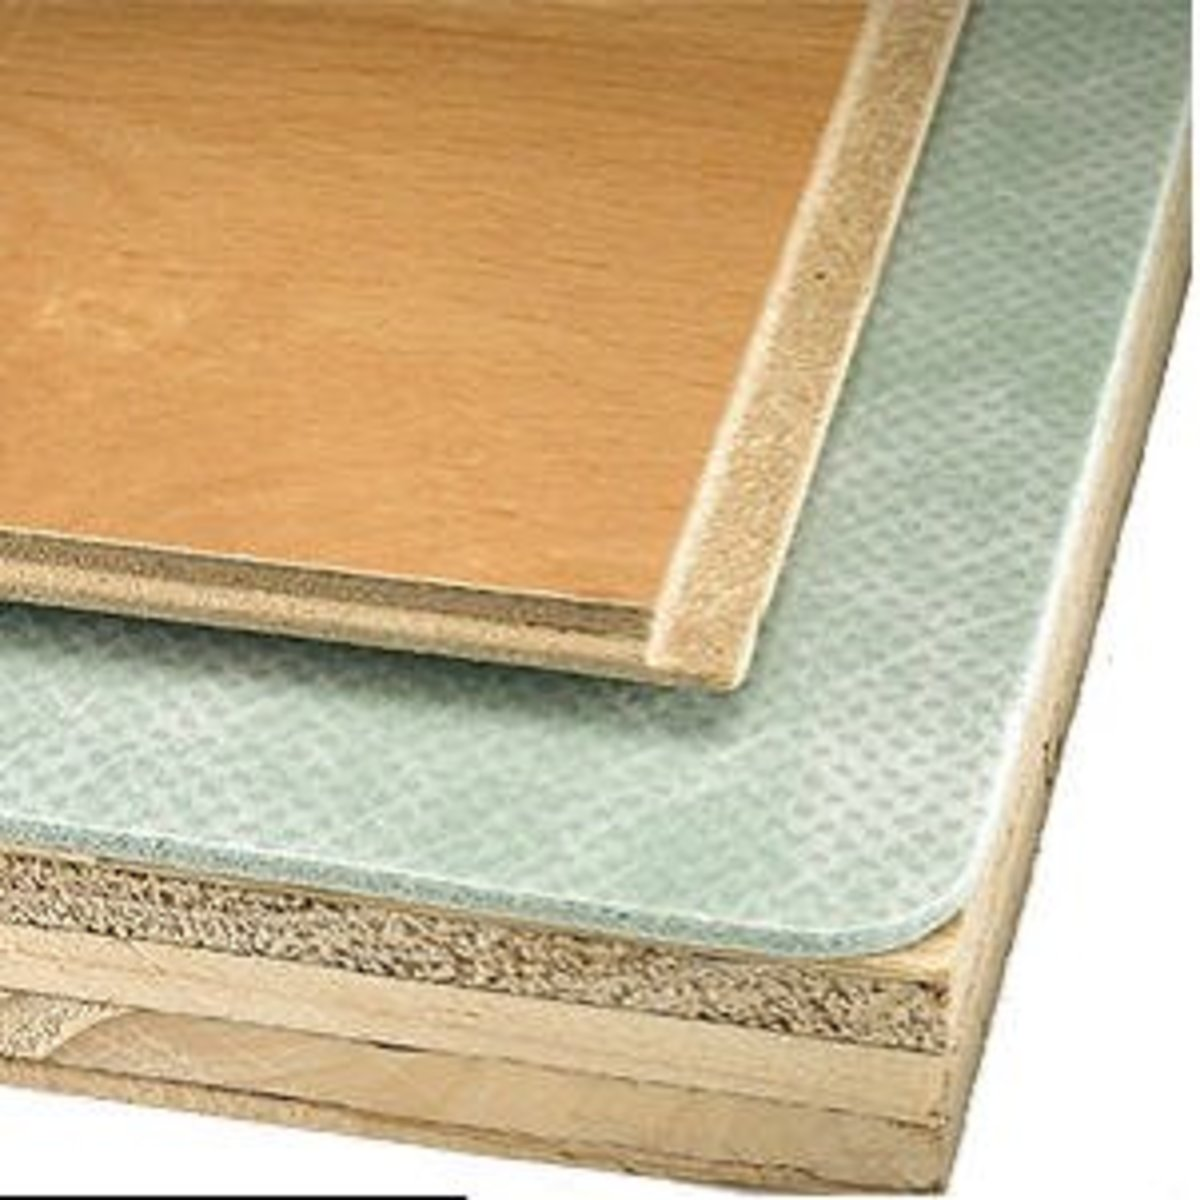 Underlayment for Floors | Ask the Builder